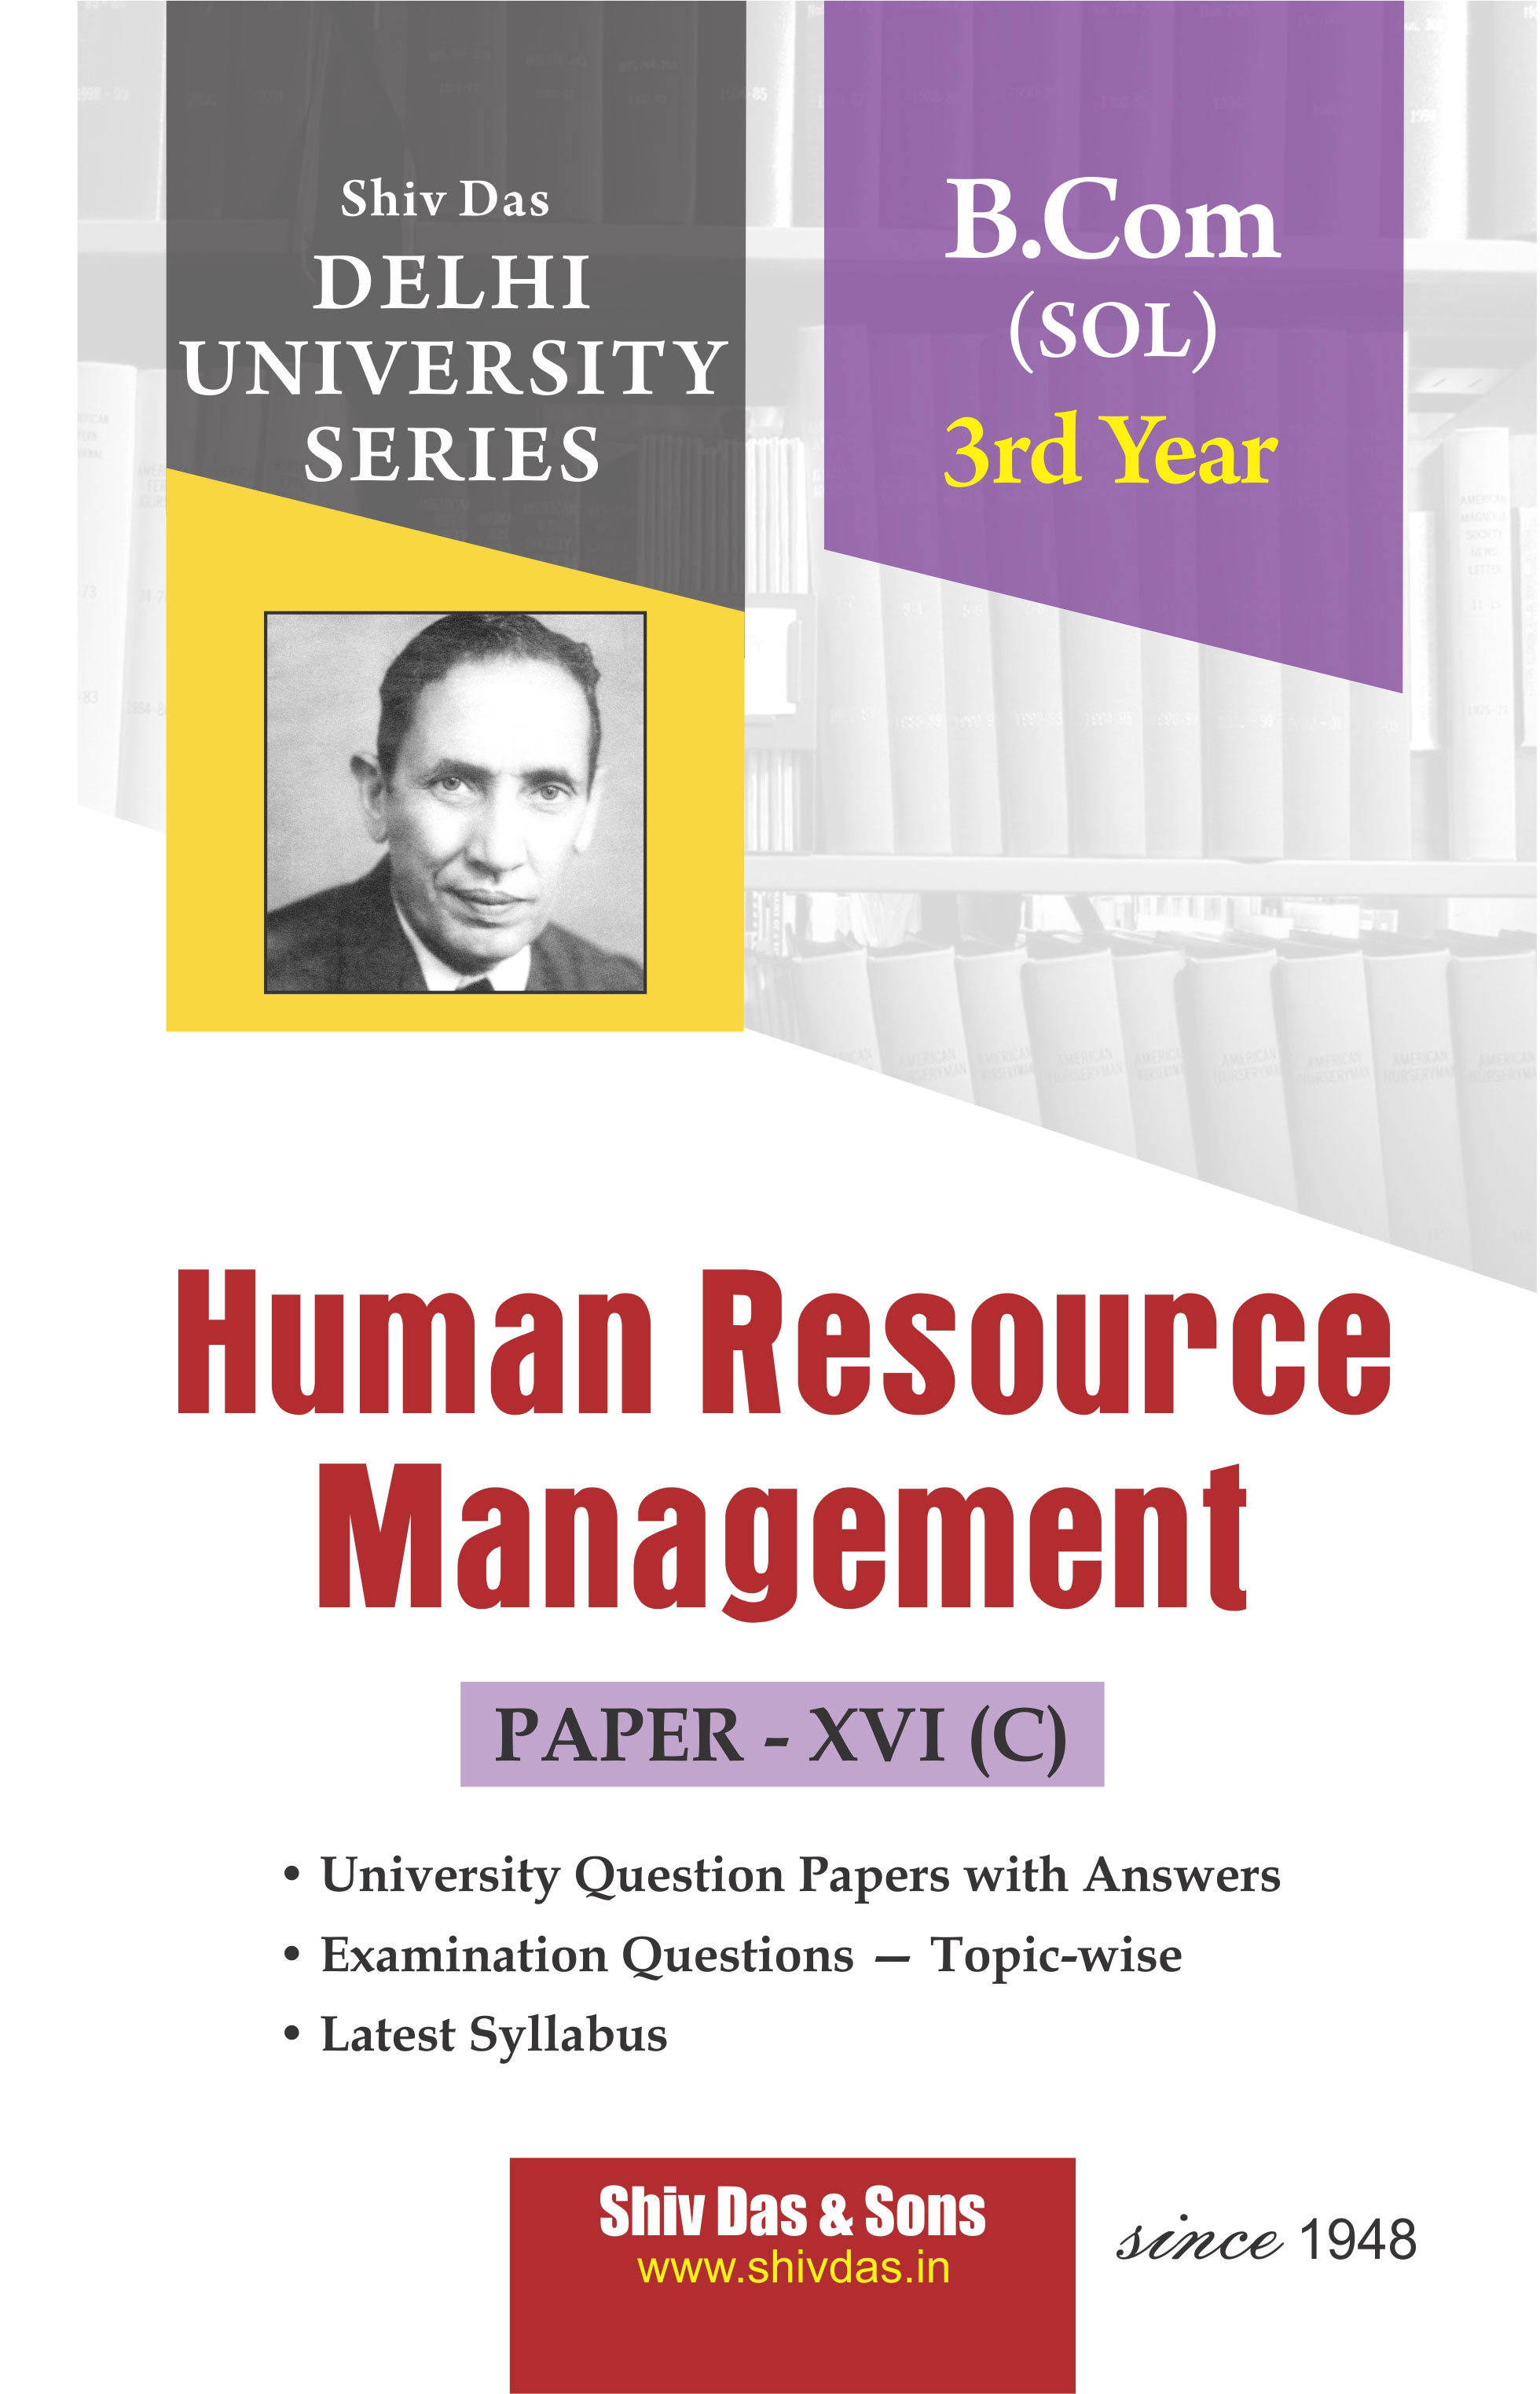 Human Resource Management (Eng. Medium) for B.Com 3rd Year SOL/External